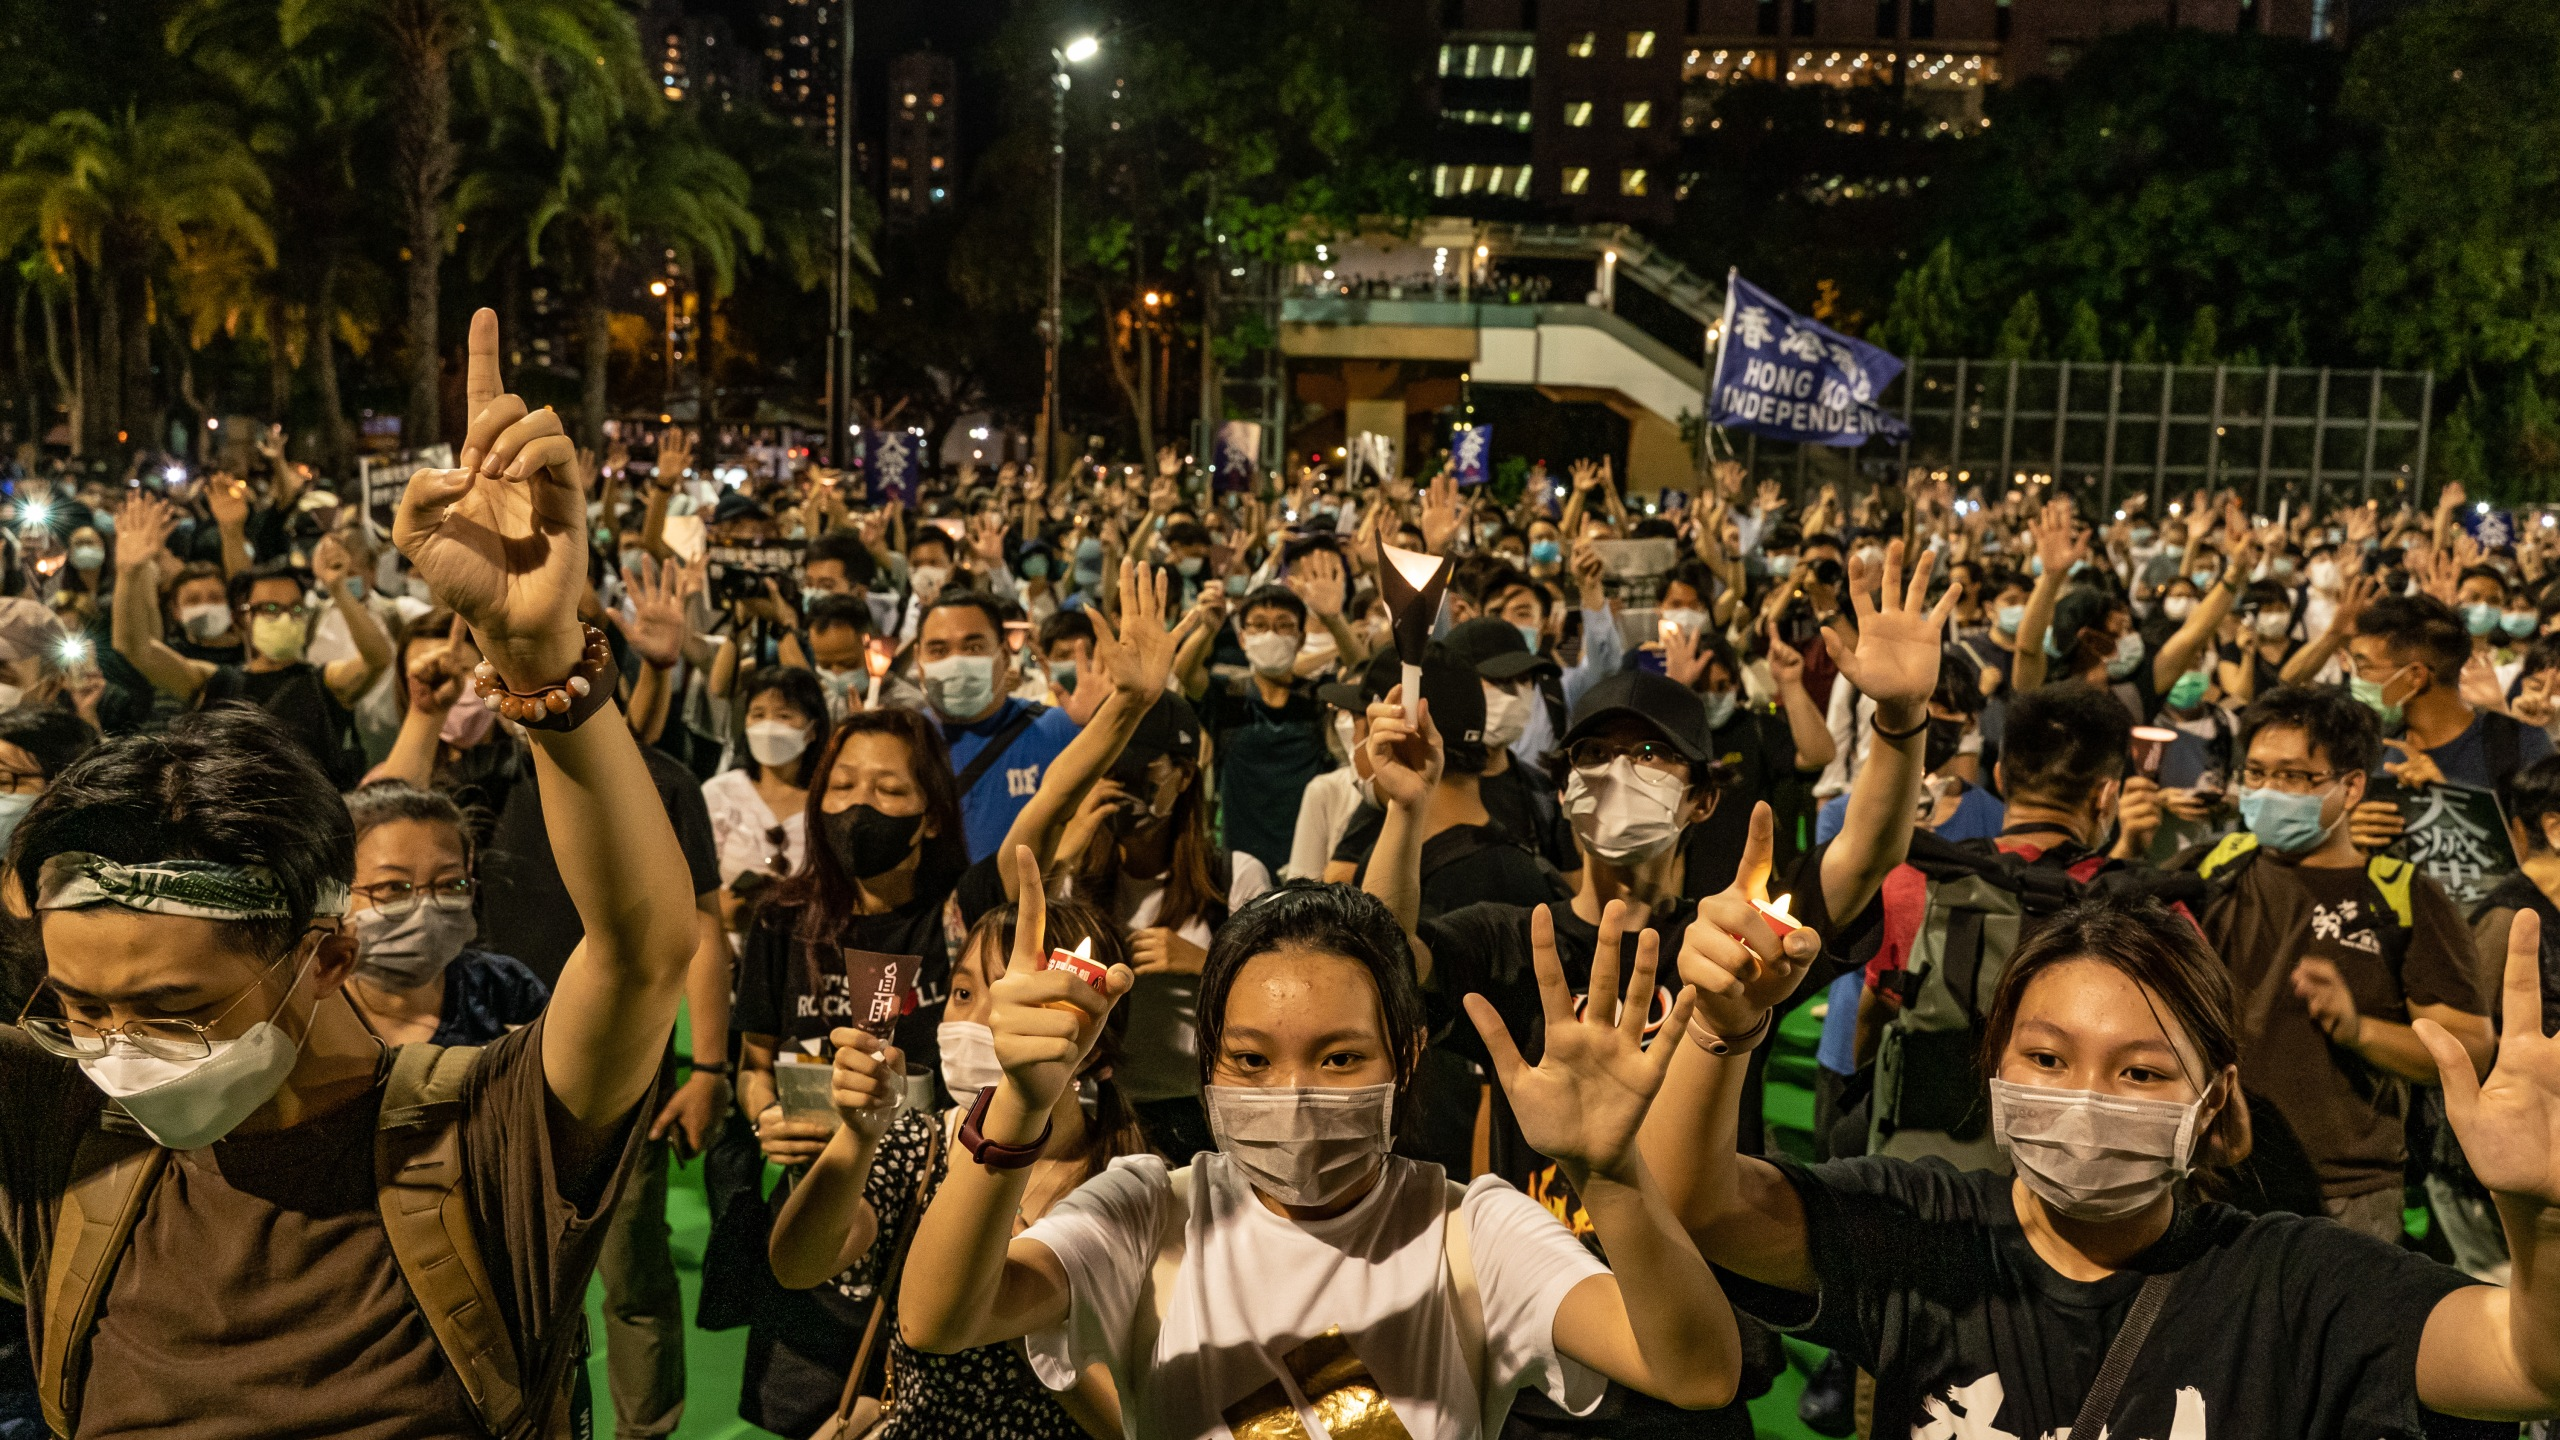 Participants raise their hands as they take part in a memorial vigil in Victoria Park on June 4, 2020, in Hong Kong, China. (Anthony Kwan/Getty Images)